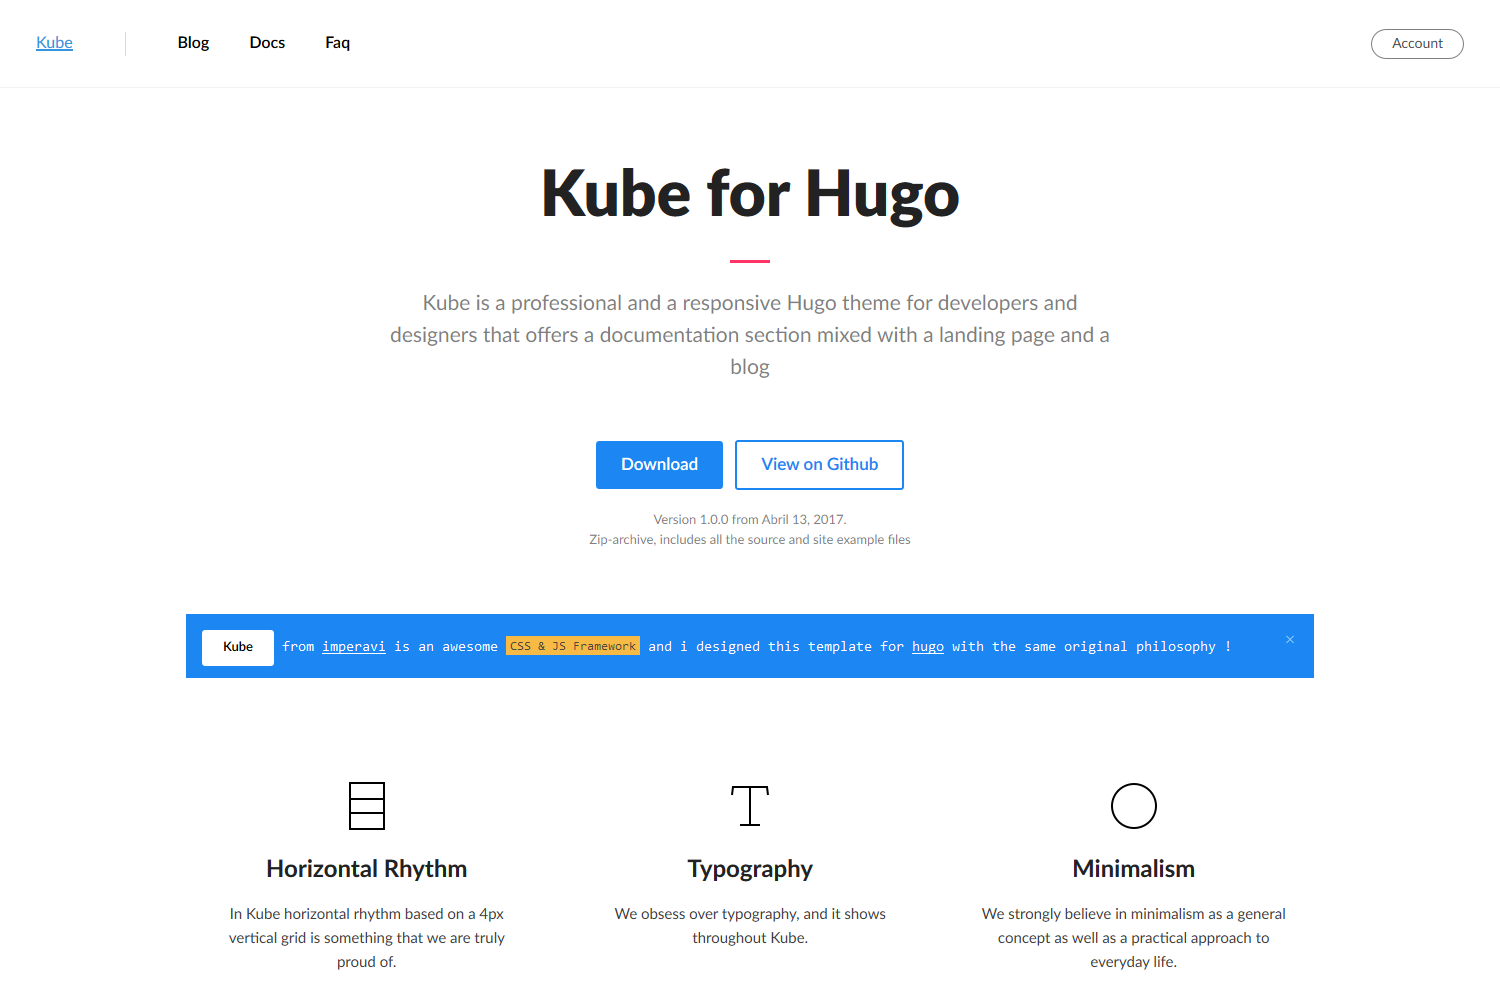 Kube is a professional and a responsive Hugo theme for